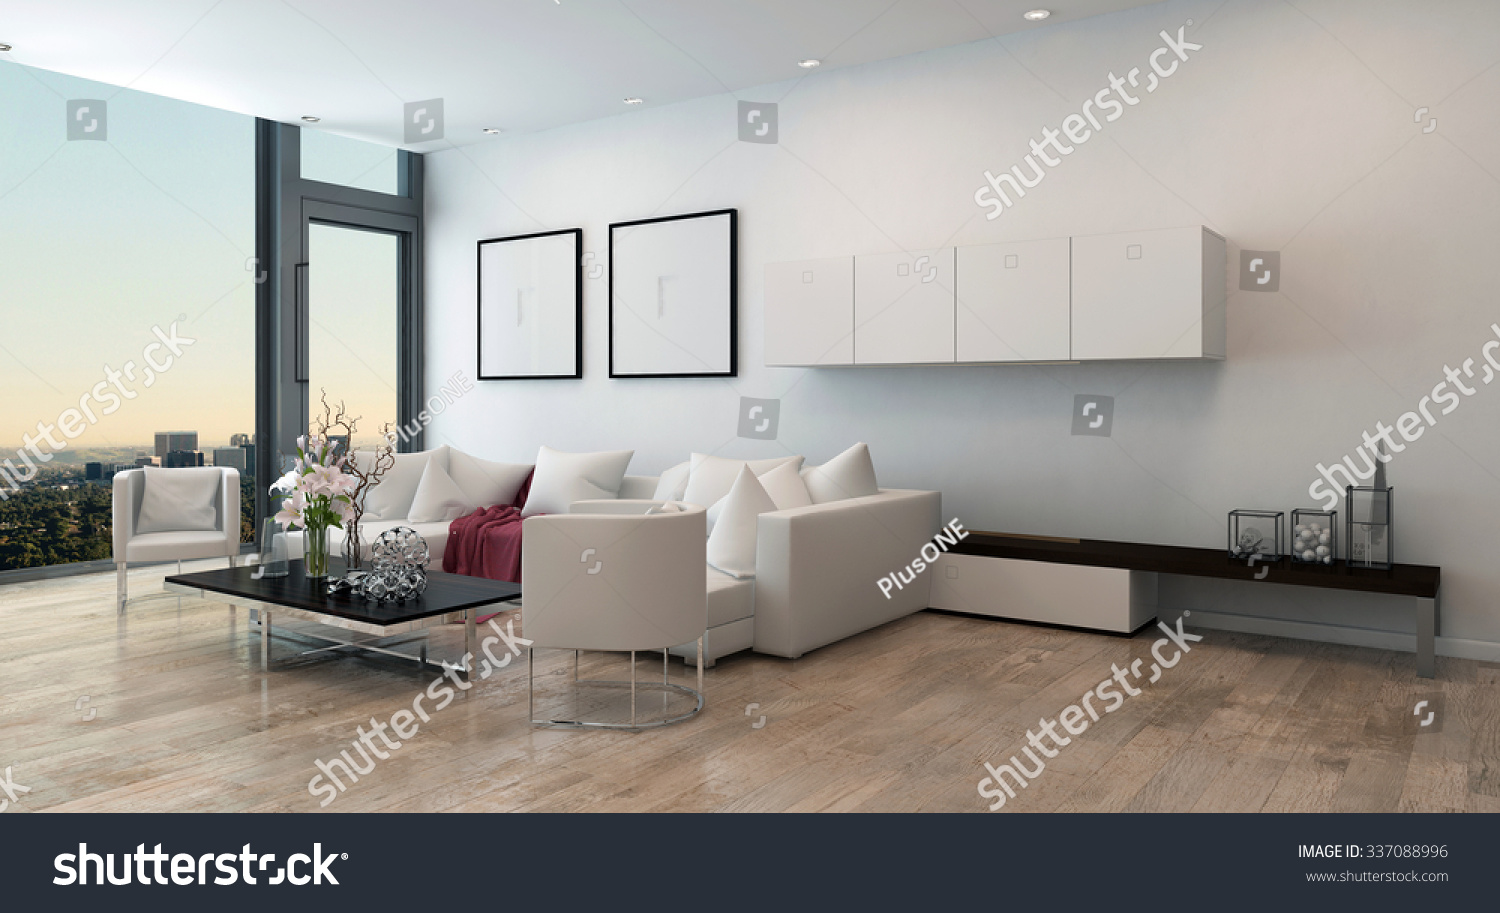 Architectural Interior Open Concept Apartment High Stock ...